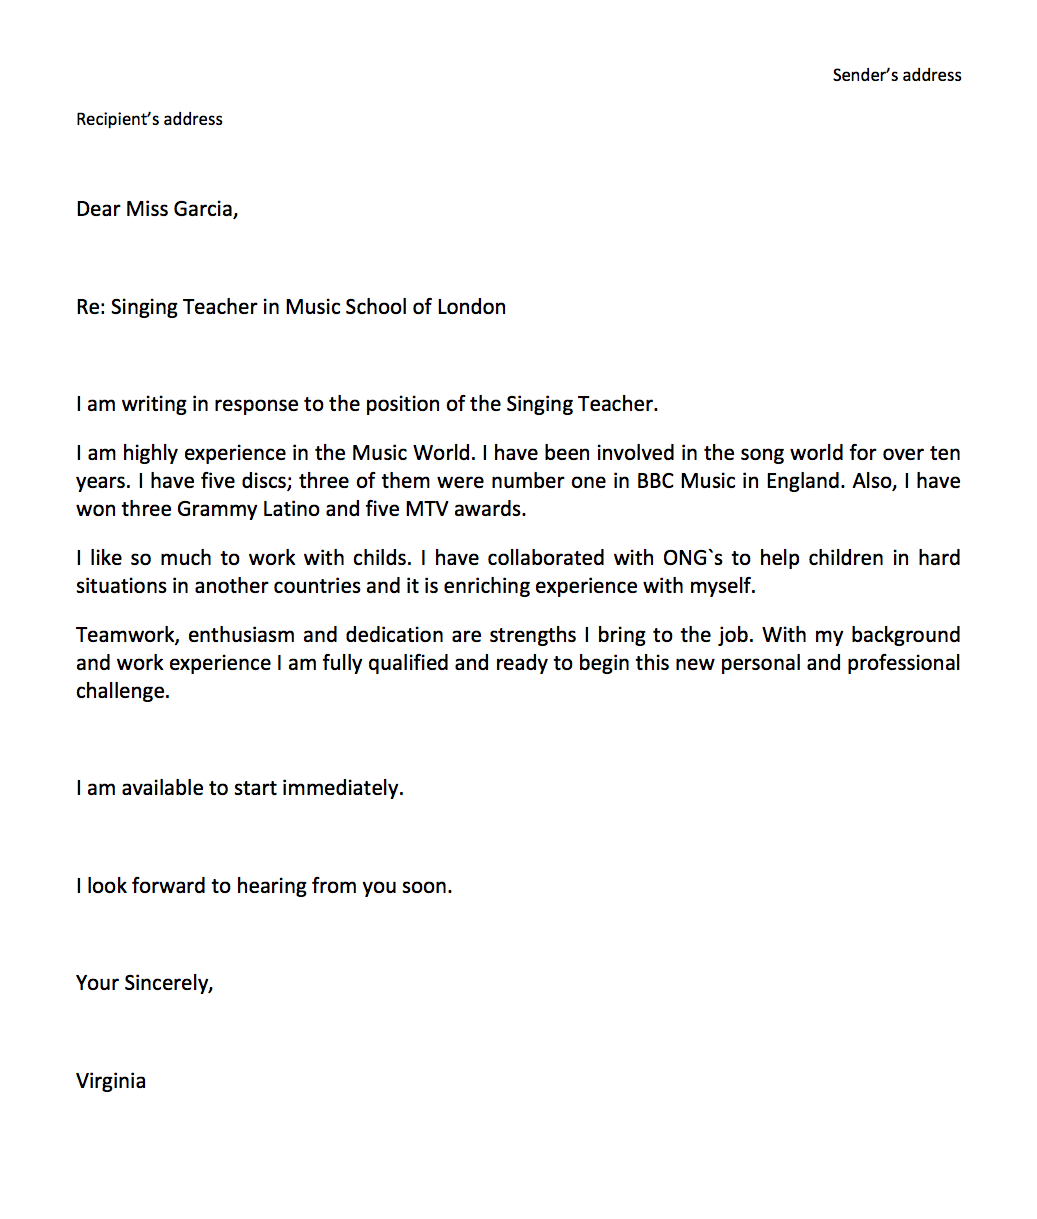 Email Cover Letter Template Uk | COVER LETTER | Student resume, Job ...